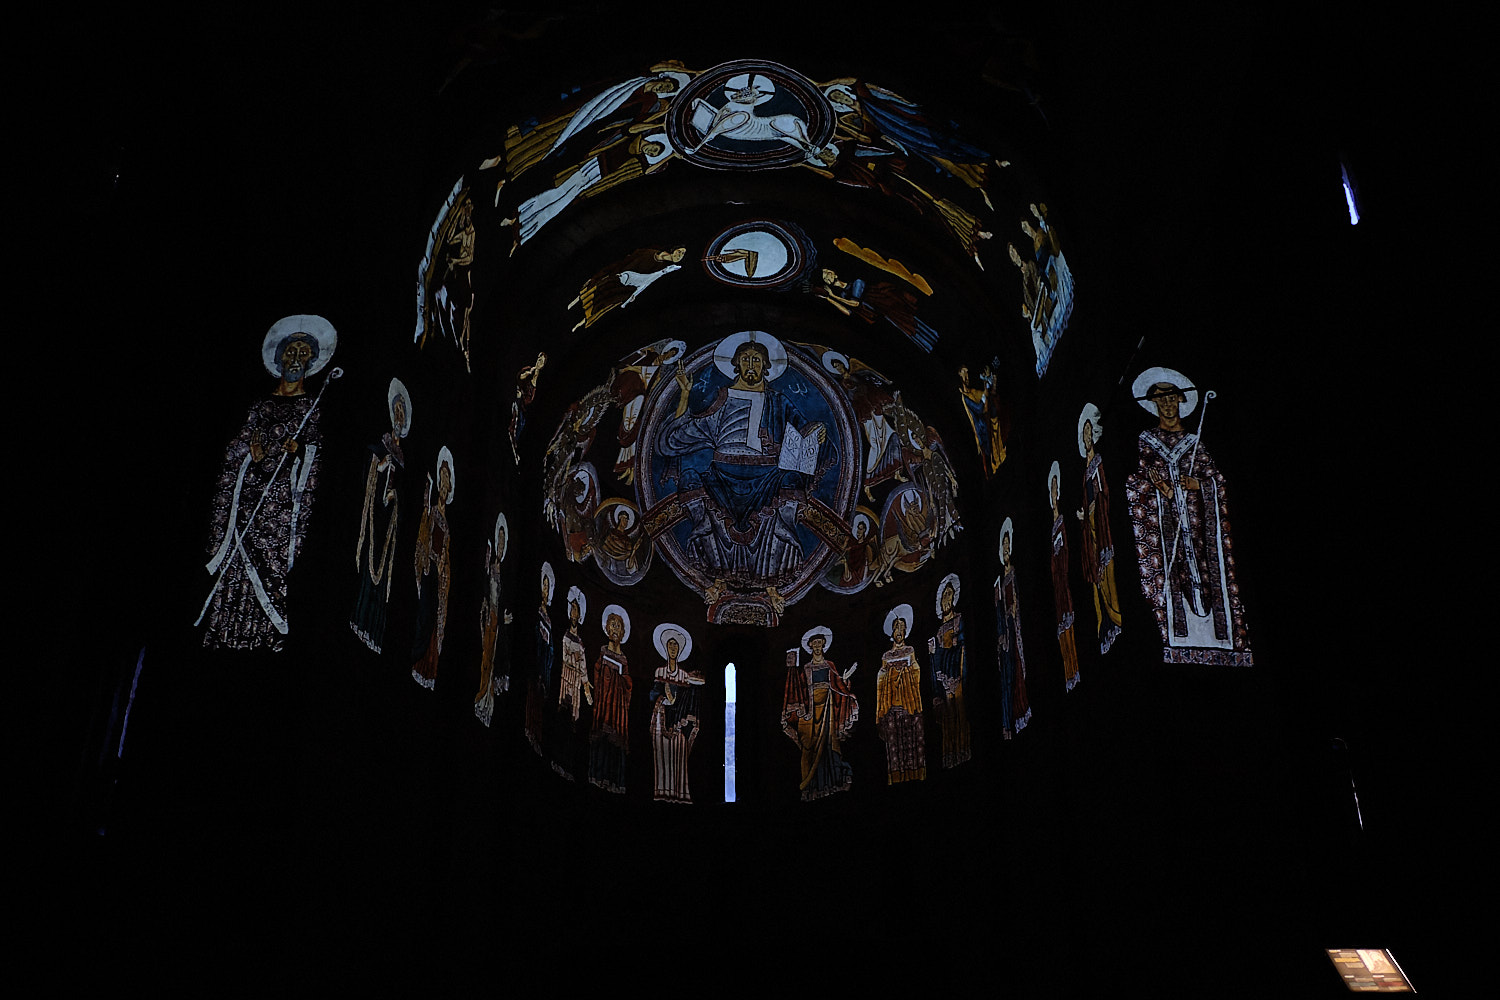 Interior view and 3D-projection of the ancient retable in the romanesque church of Taüll, Vall de Boí, Pyrenees, Spain